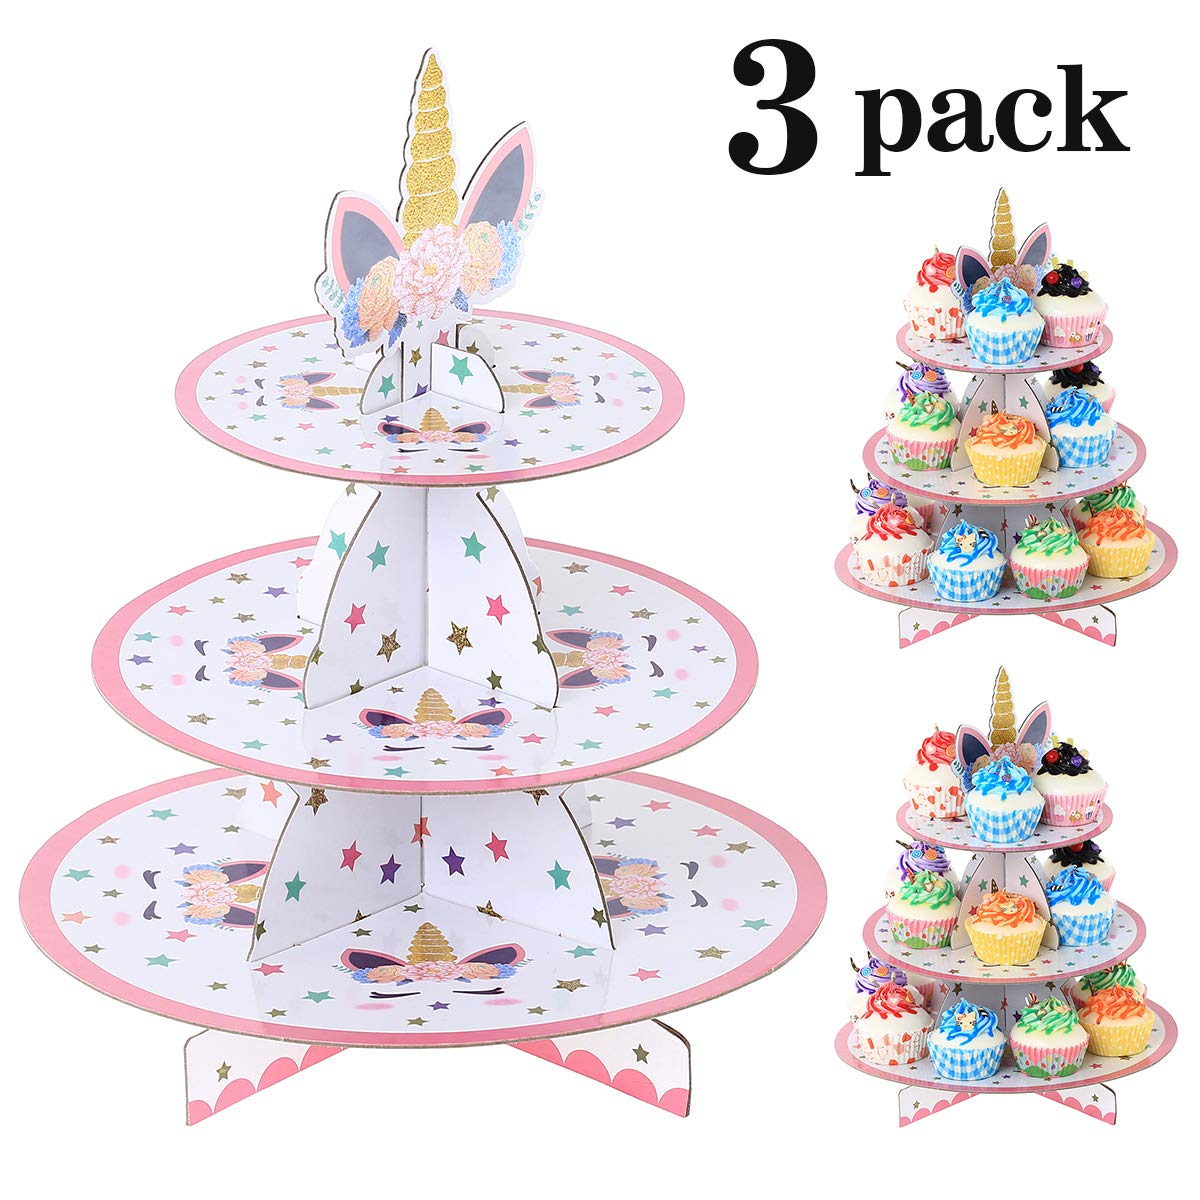 UltraOutlet Set of Three Unicorn 3-Tier Cardboard Cupcake Stands, Paper Cupcake Holders for Weddings, Birthday Parties, Baby Showers, and Graduations by UltraOutlet